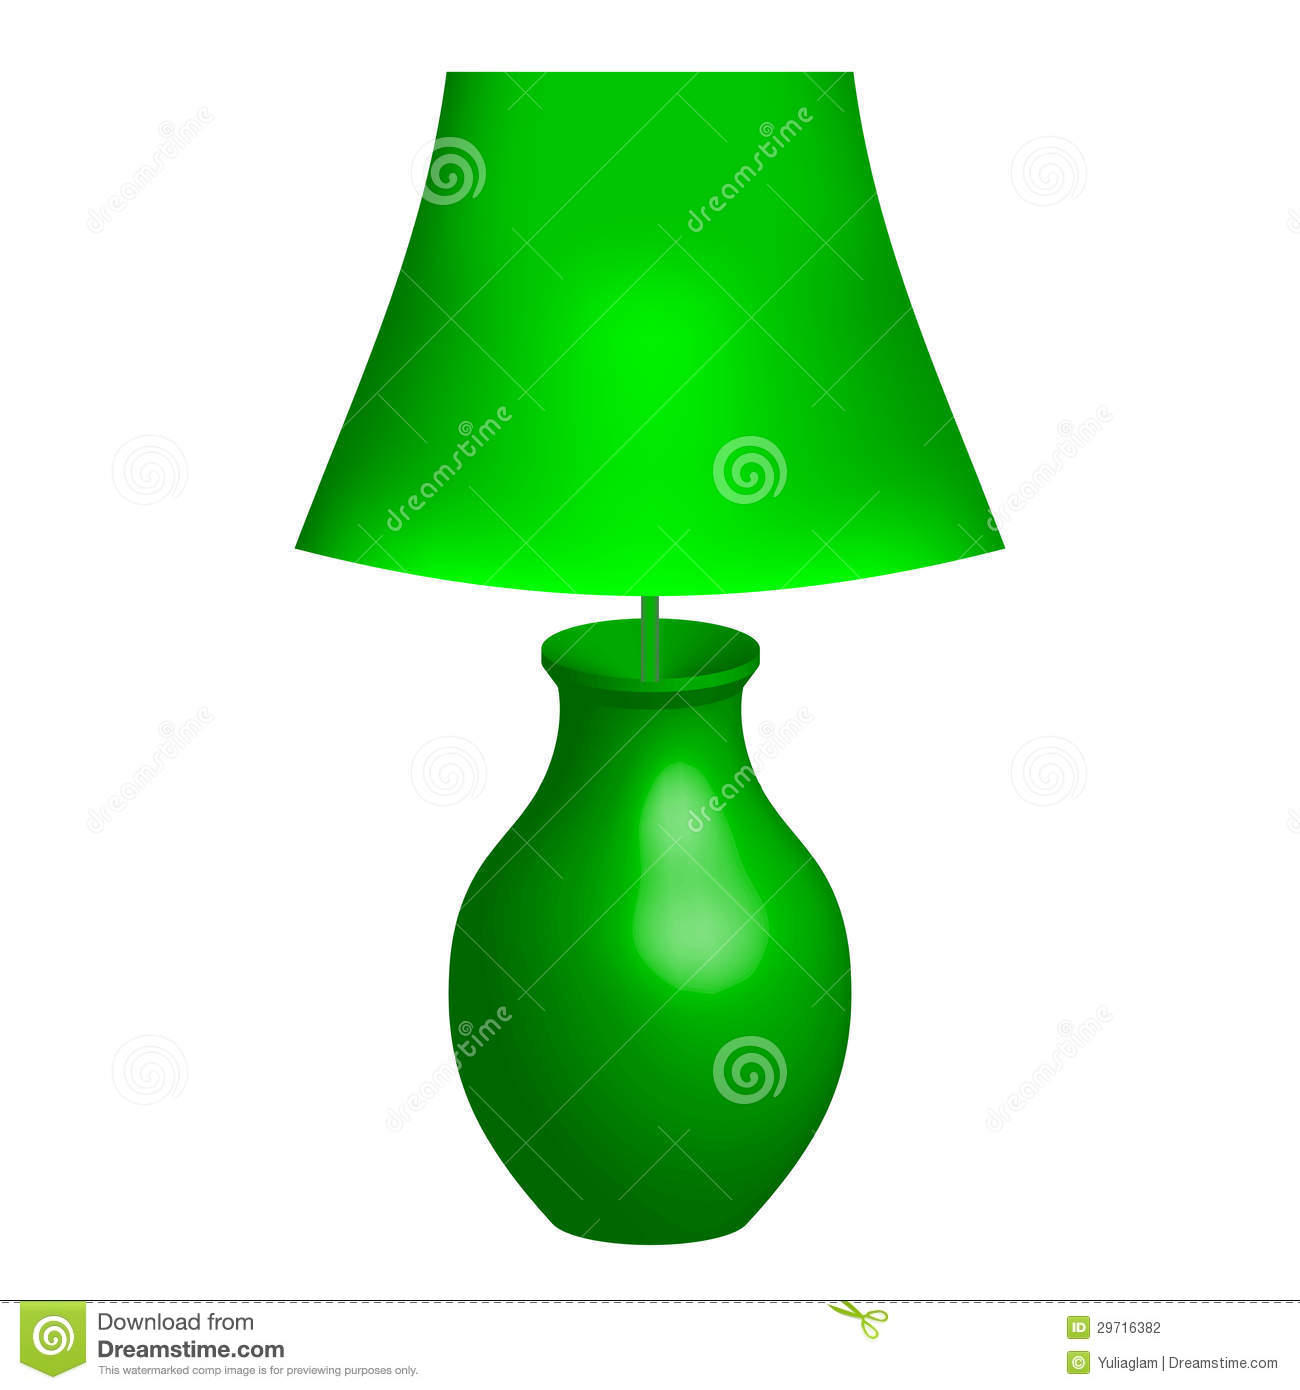 Green Lamp Stock Vector. Image Of Lampshade, Room